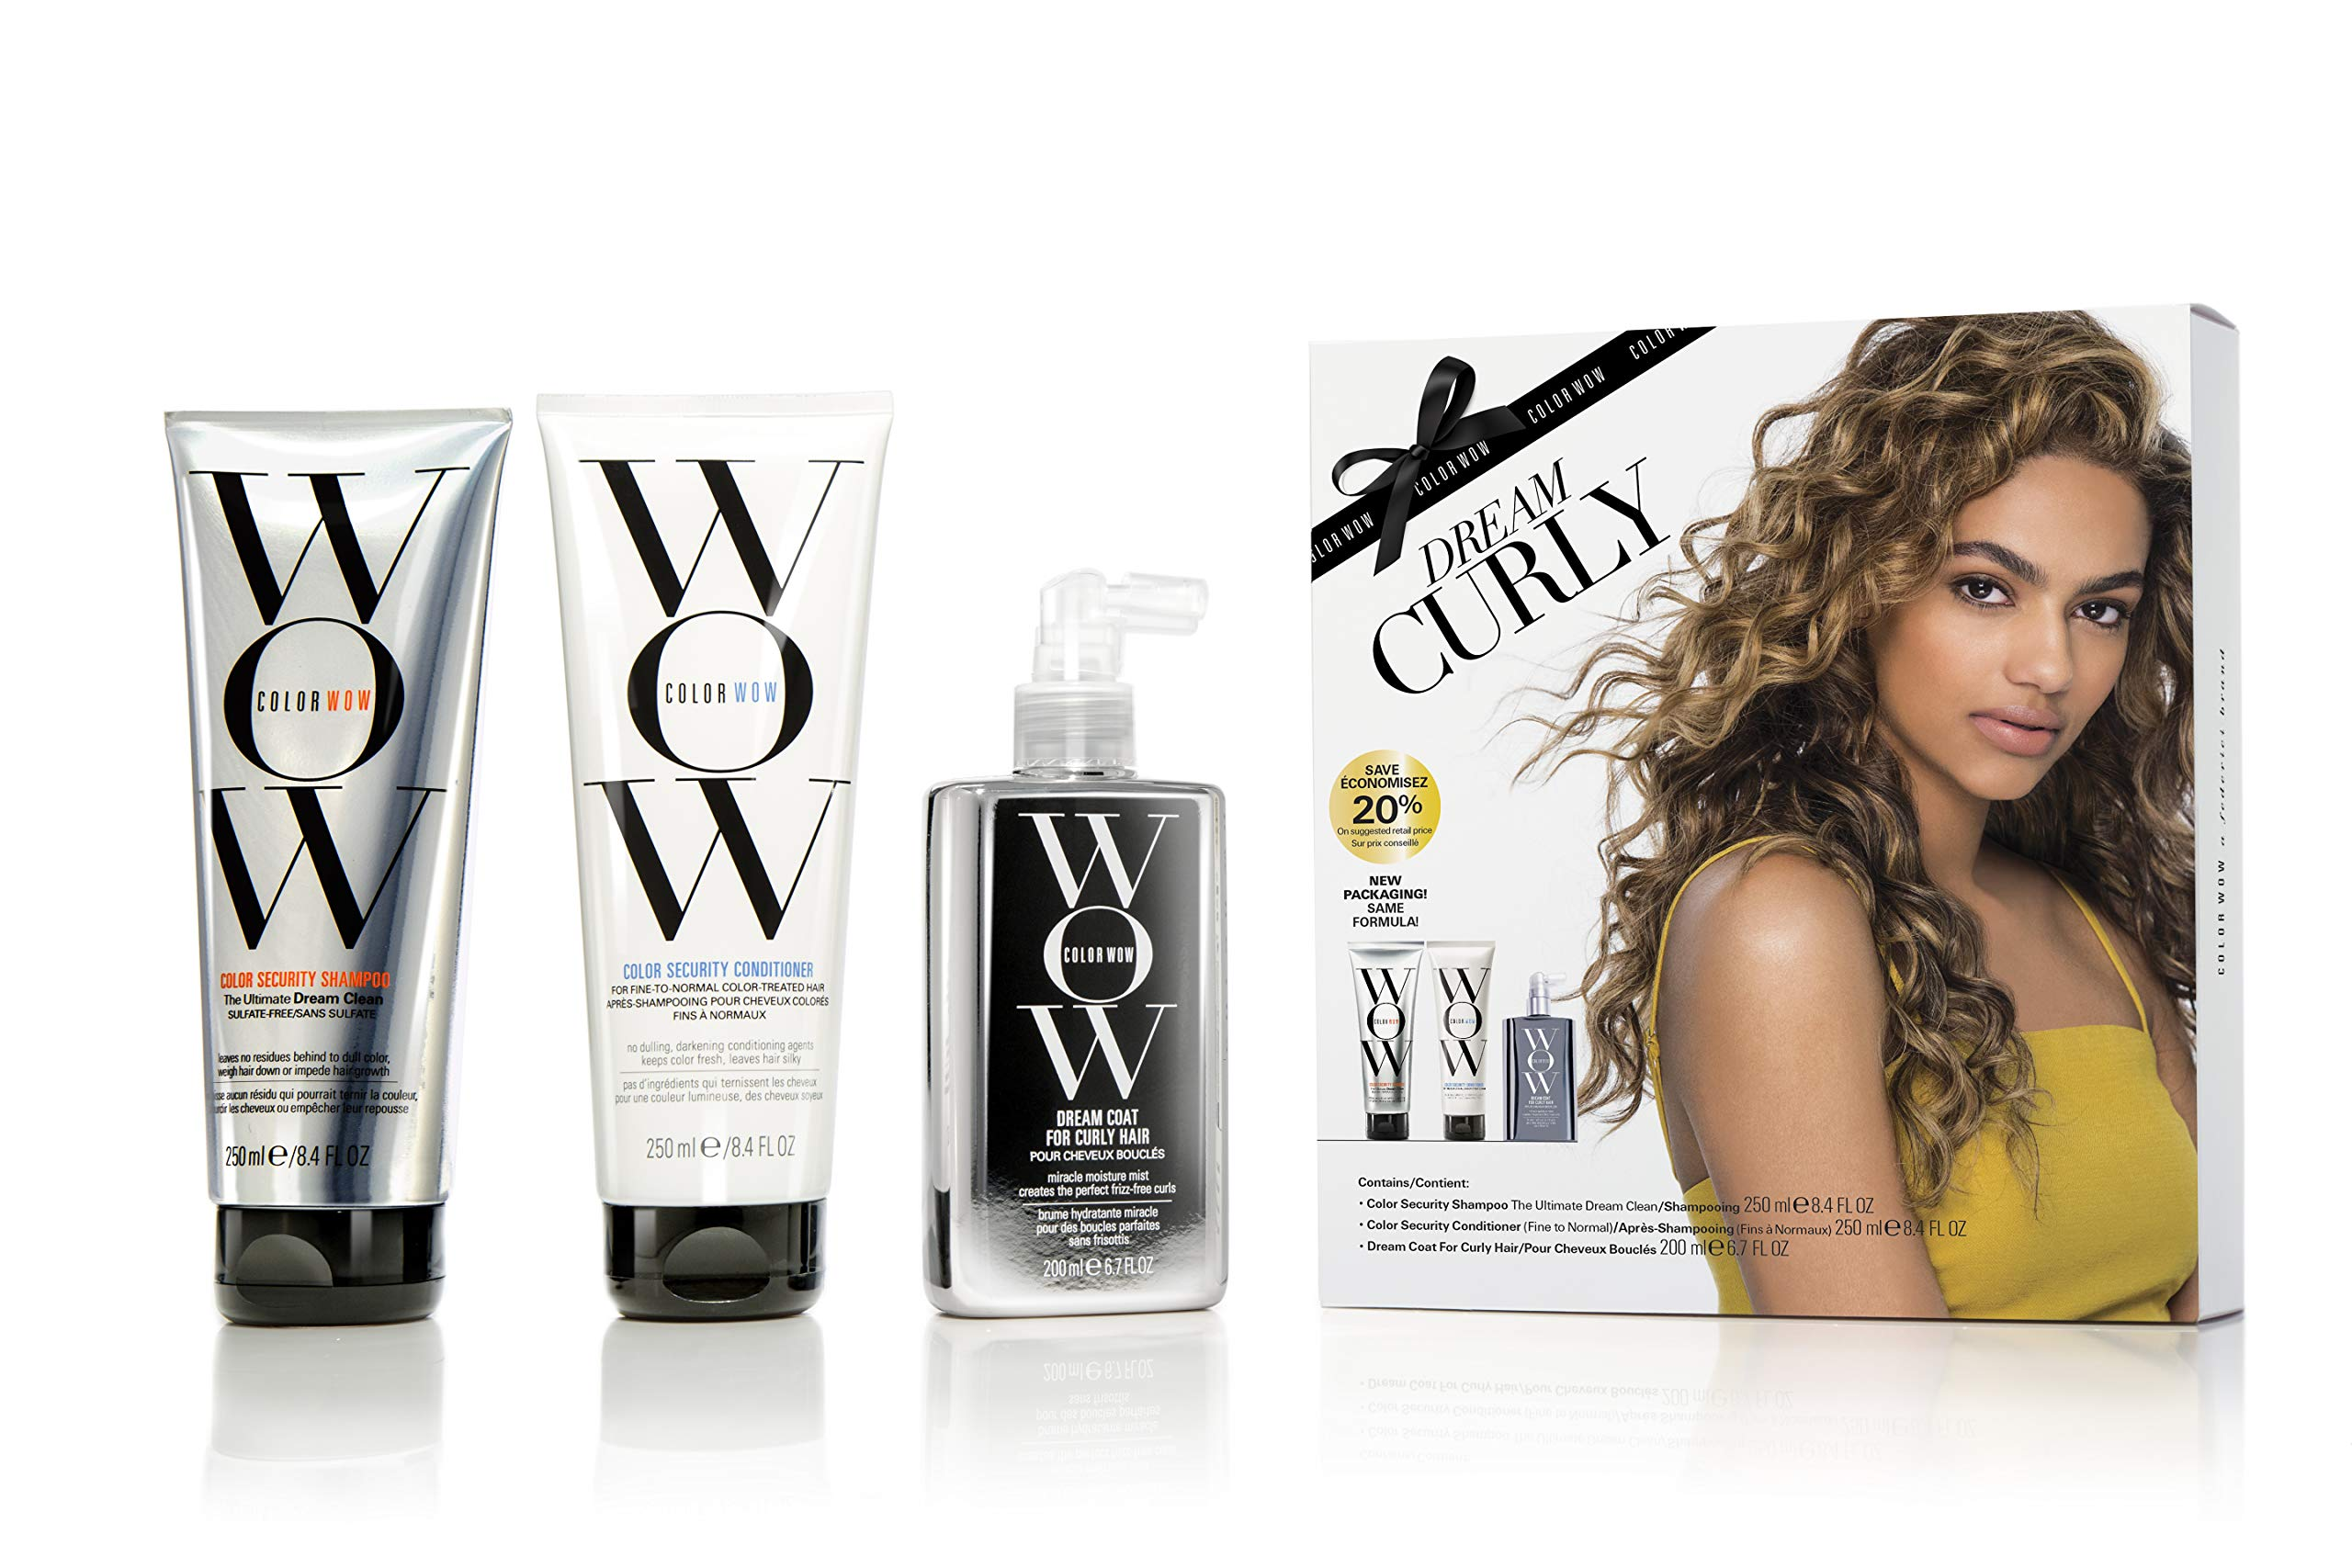 COLOR WOW Dream Curly Kit by COLOR WOW